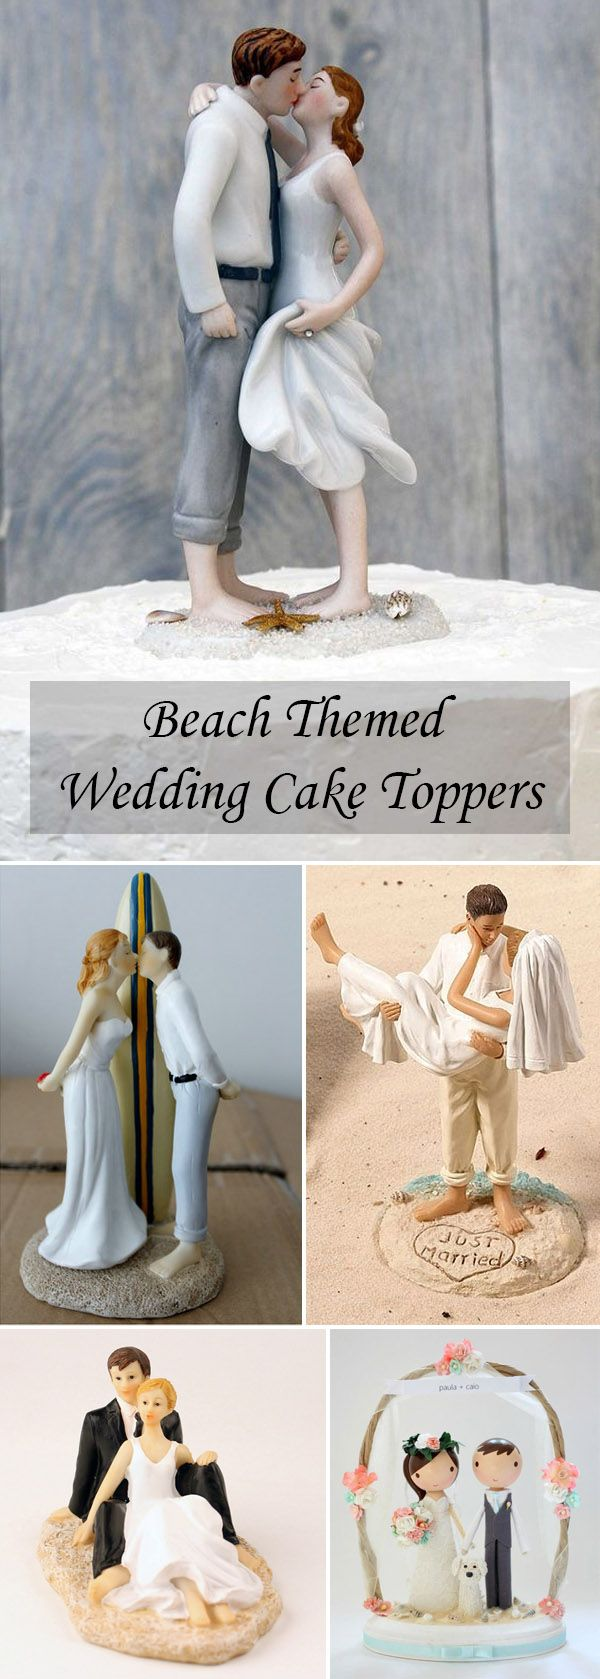 Best 25 funny wedding cake toppers ideas on pinterest funny different and funny wedding gifts and cake toppers junglespirit Image collections